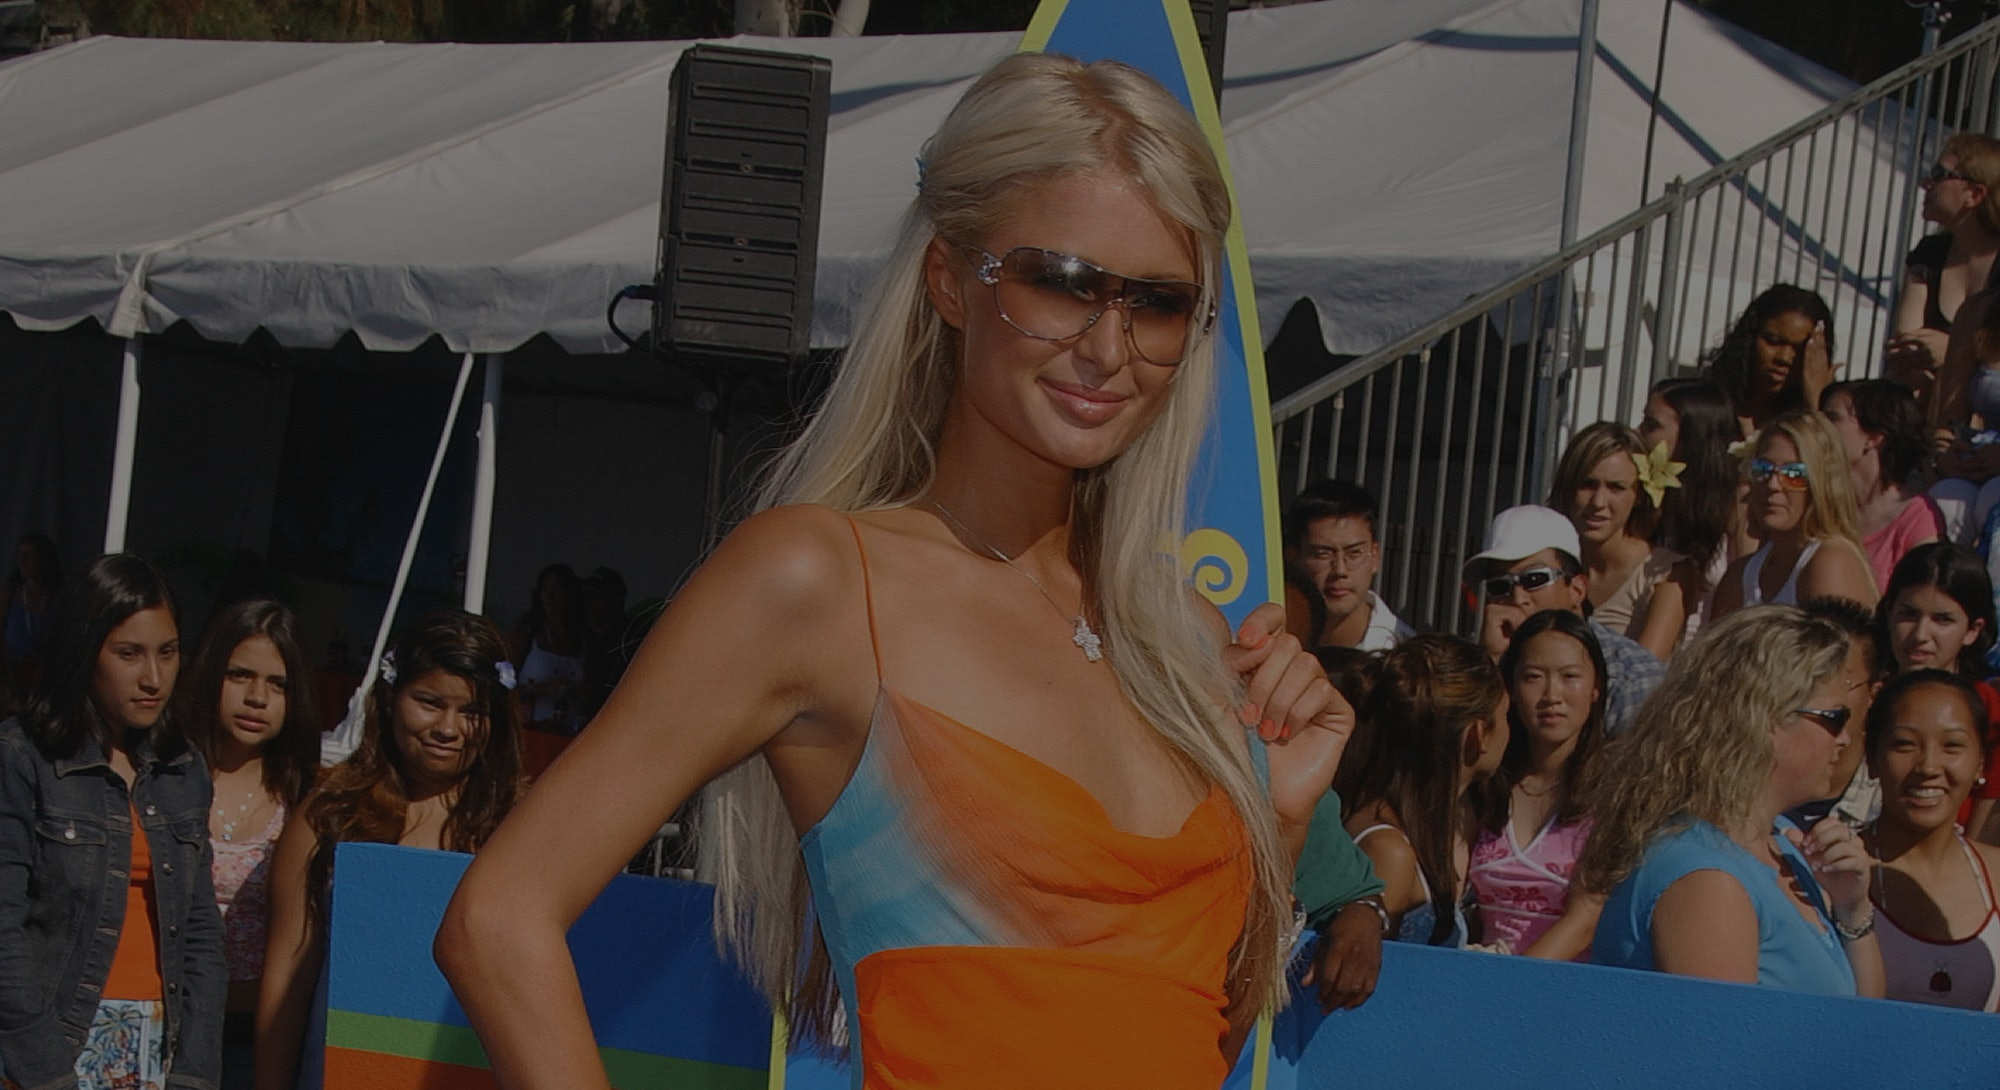 Paris Hilton arriving at The Teen Choice Awards 2003. (Photo by Frank Trapper/Corbis via Getty Images)